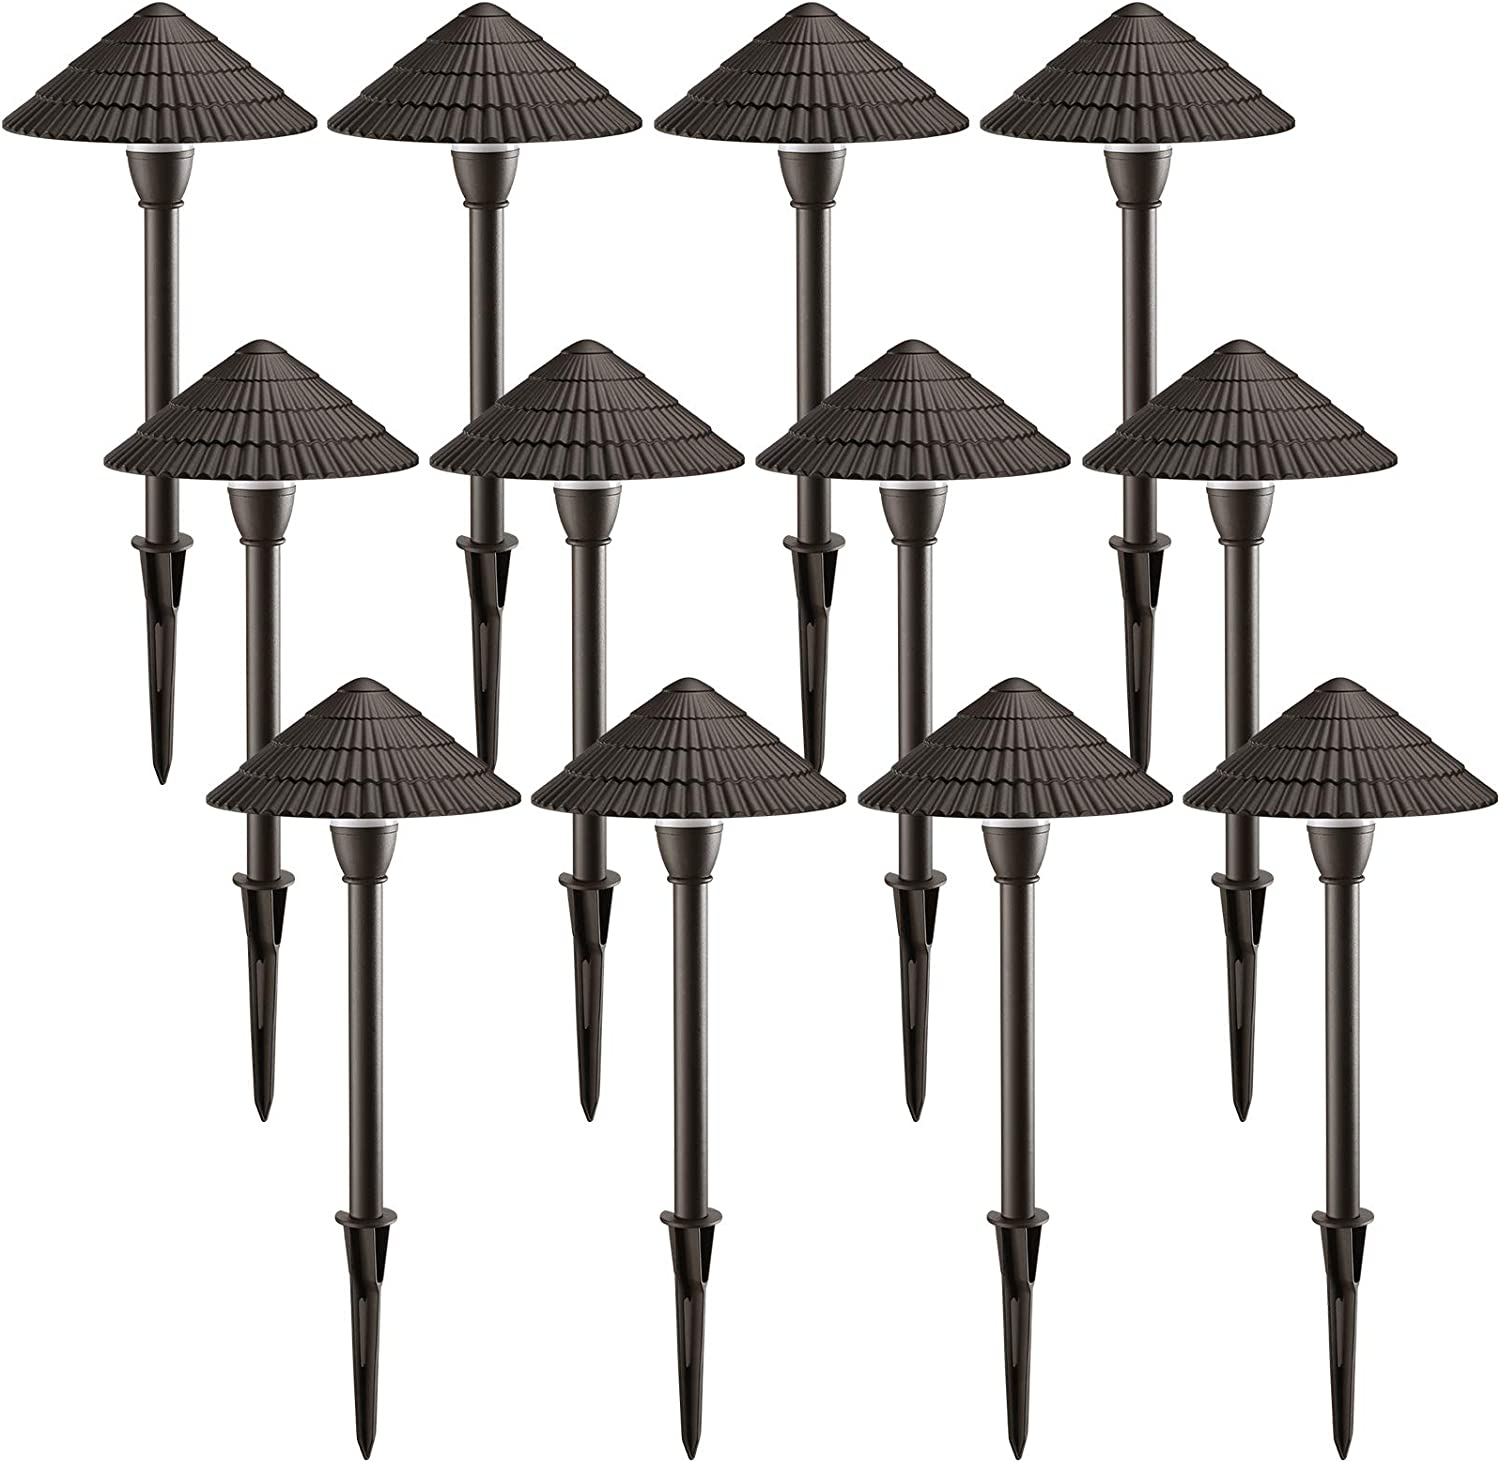 LEONLITE 12-Pack LED Landscape Lighting, Outdoor Waterproof Garden Lights, 3W 12V Low Voltage Pathway Lights, 5000K Daylight, ETL Listed, Mushroom Shape